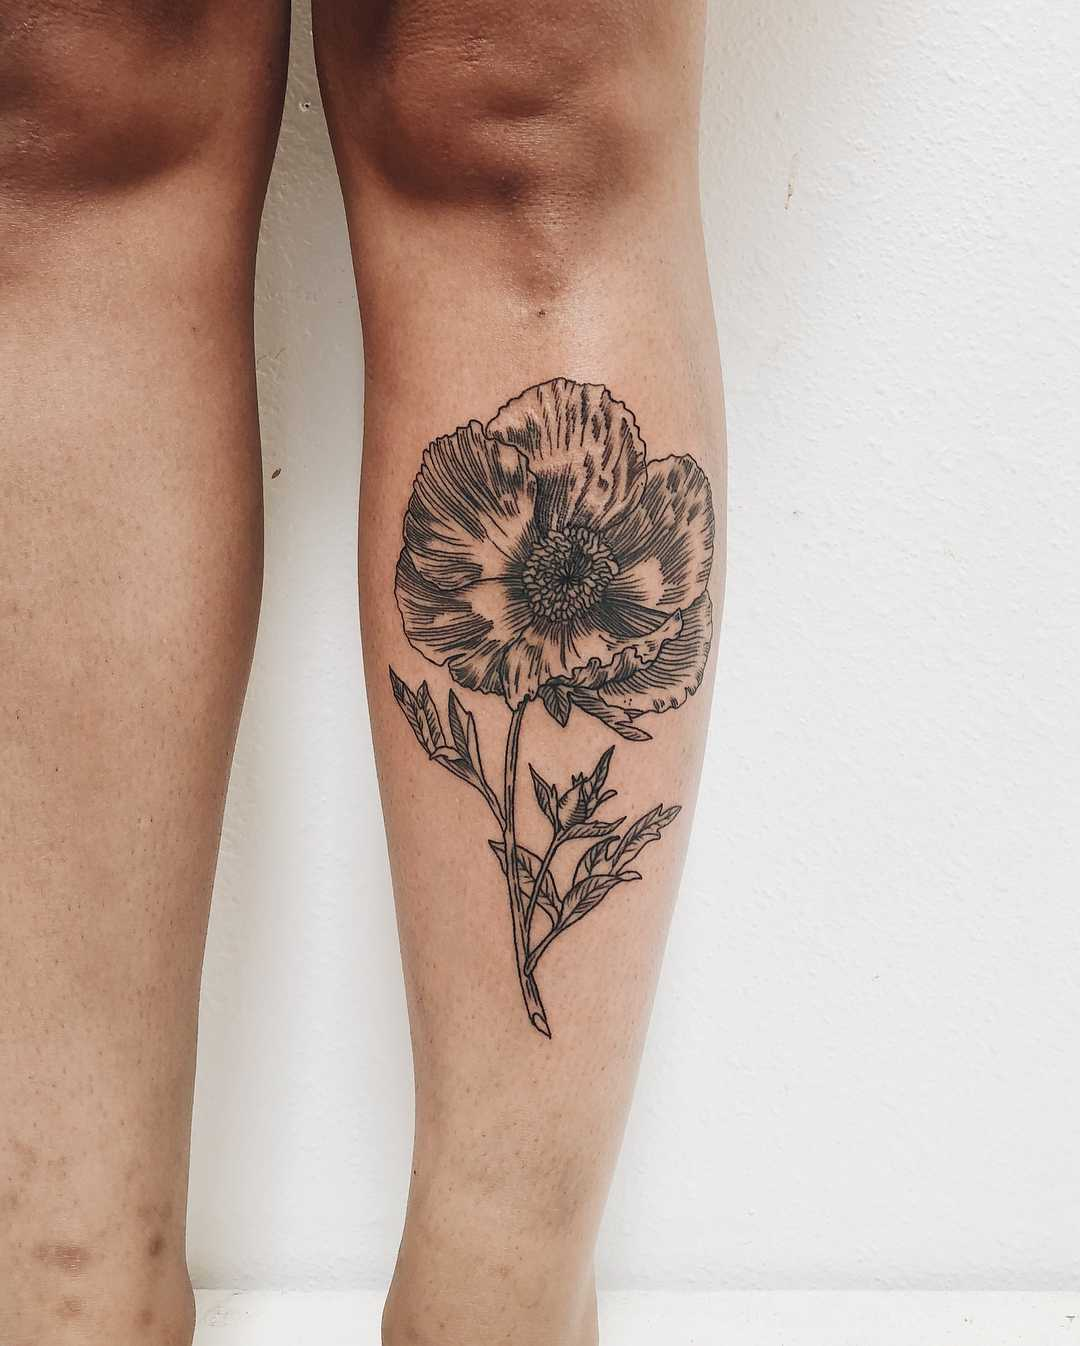 Matilija poppy tattoo by Finley Jordan